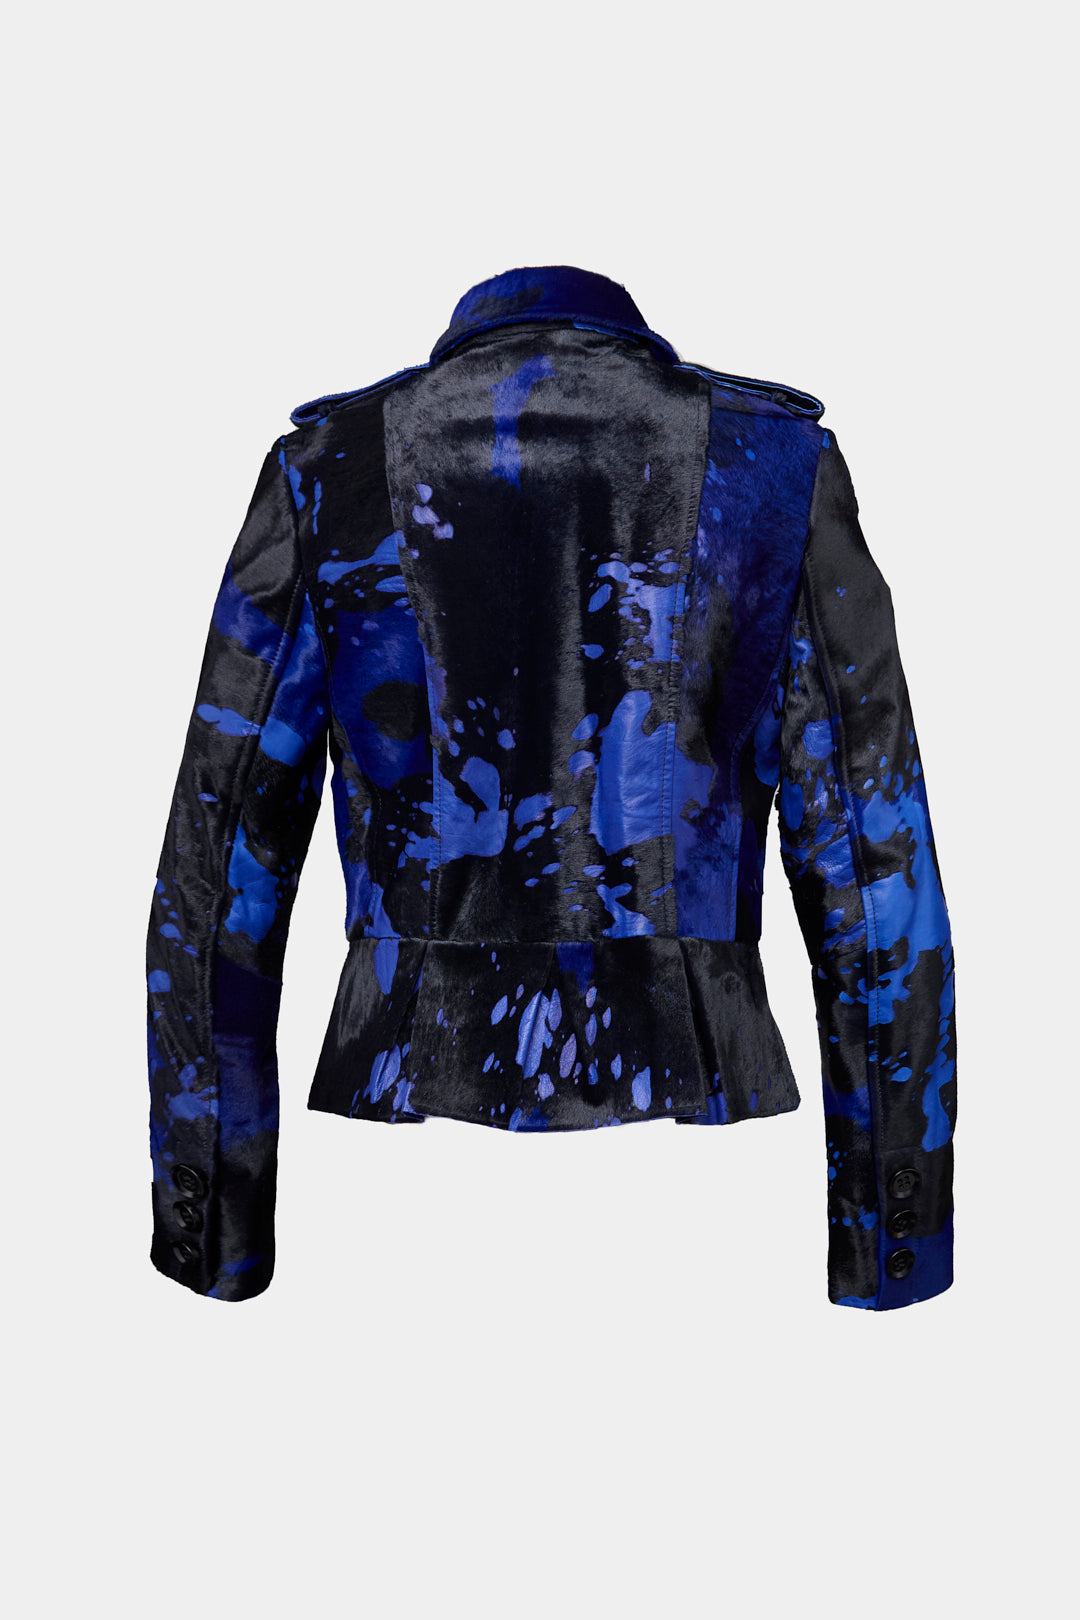 SNOWDROP LEATHER JACKETS DYED IN BLUE